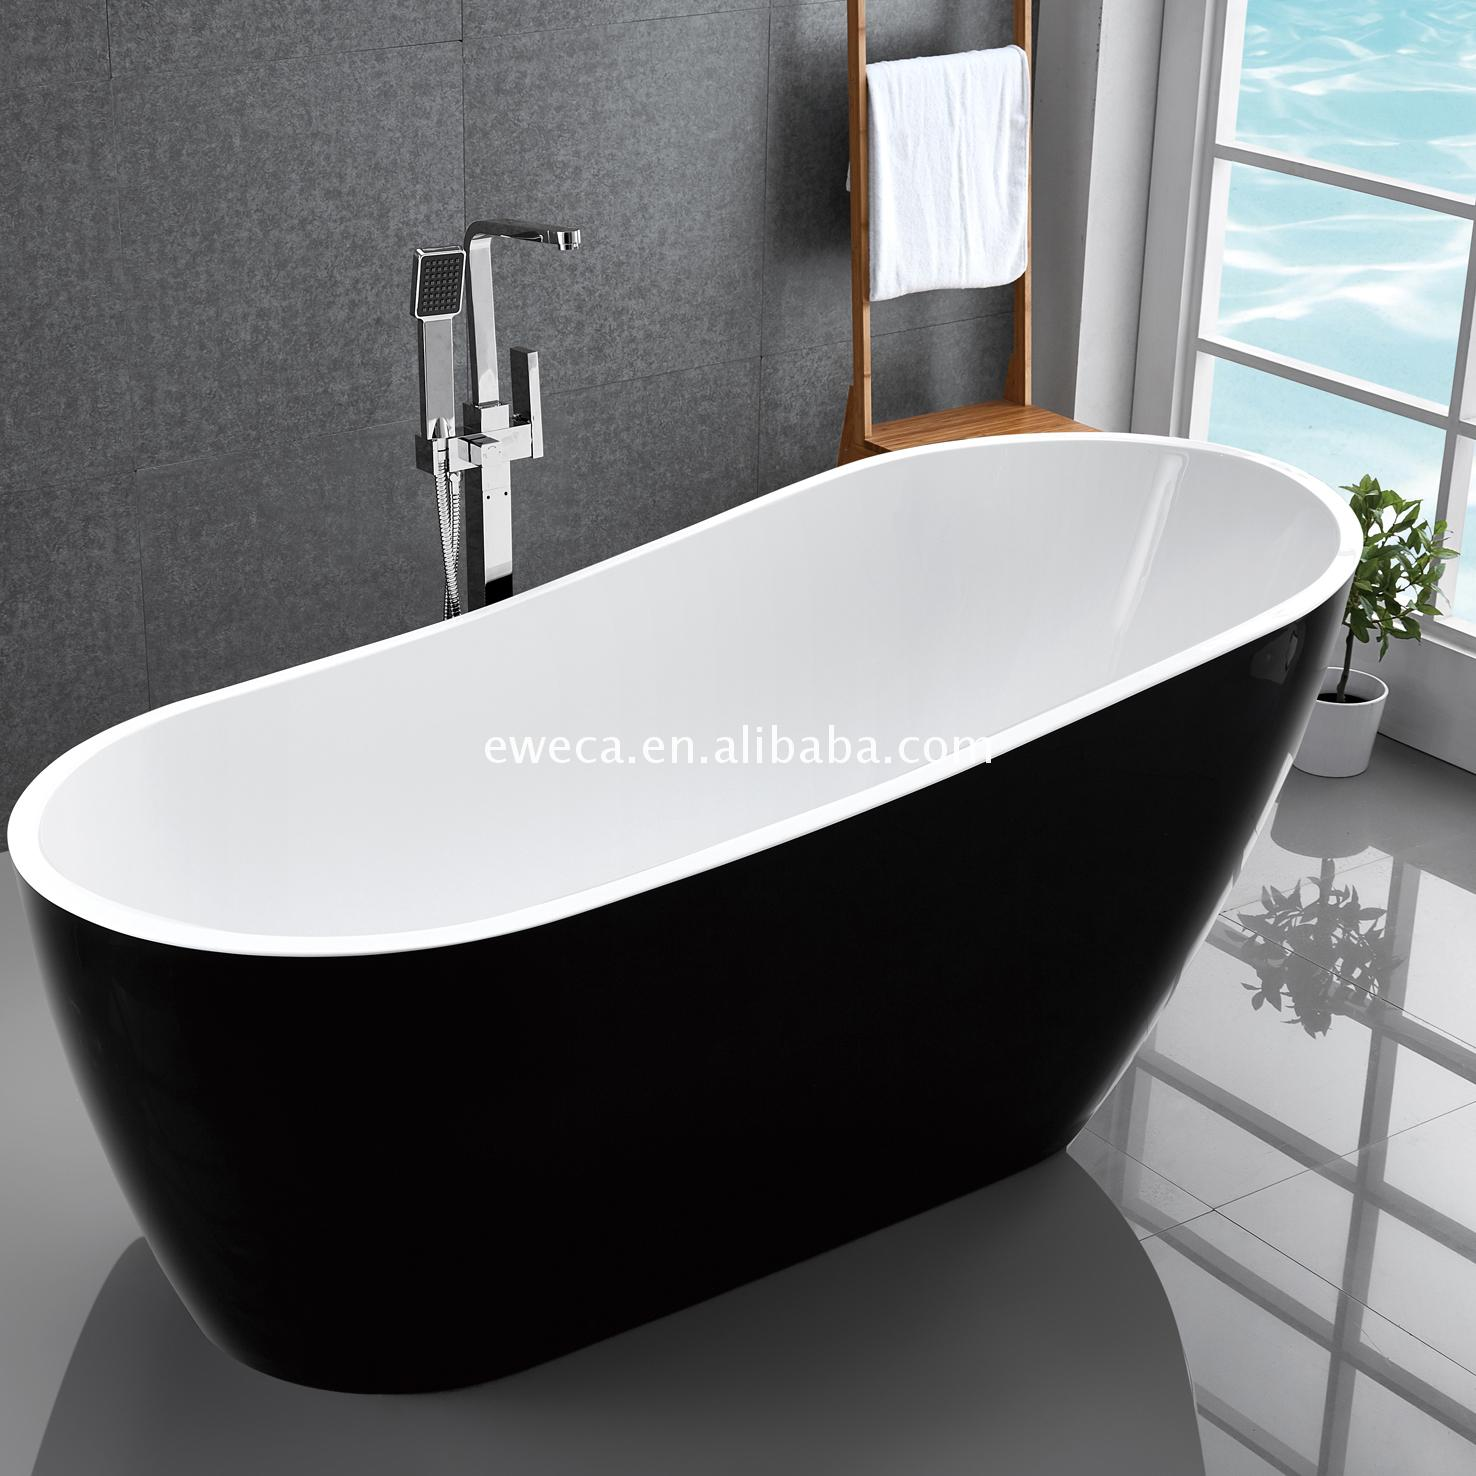 The Best And Cheapest Acrylic Transparent Bathtub With Best Price ...